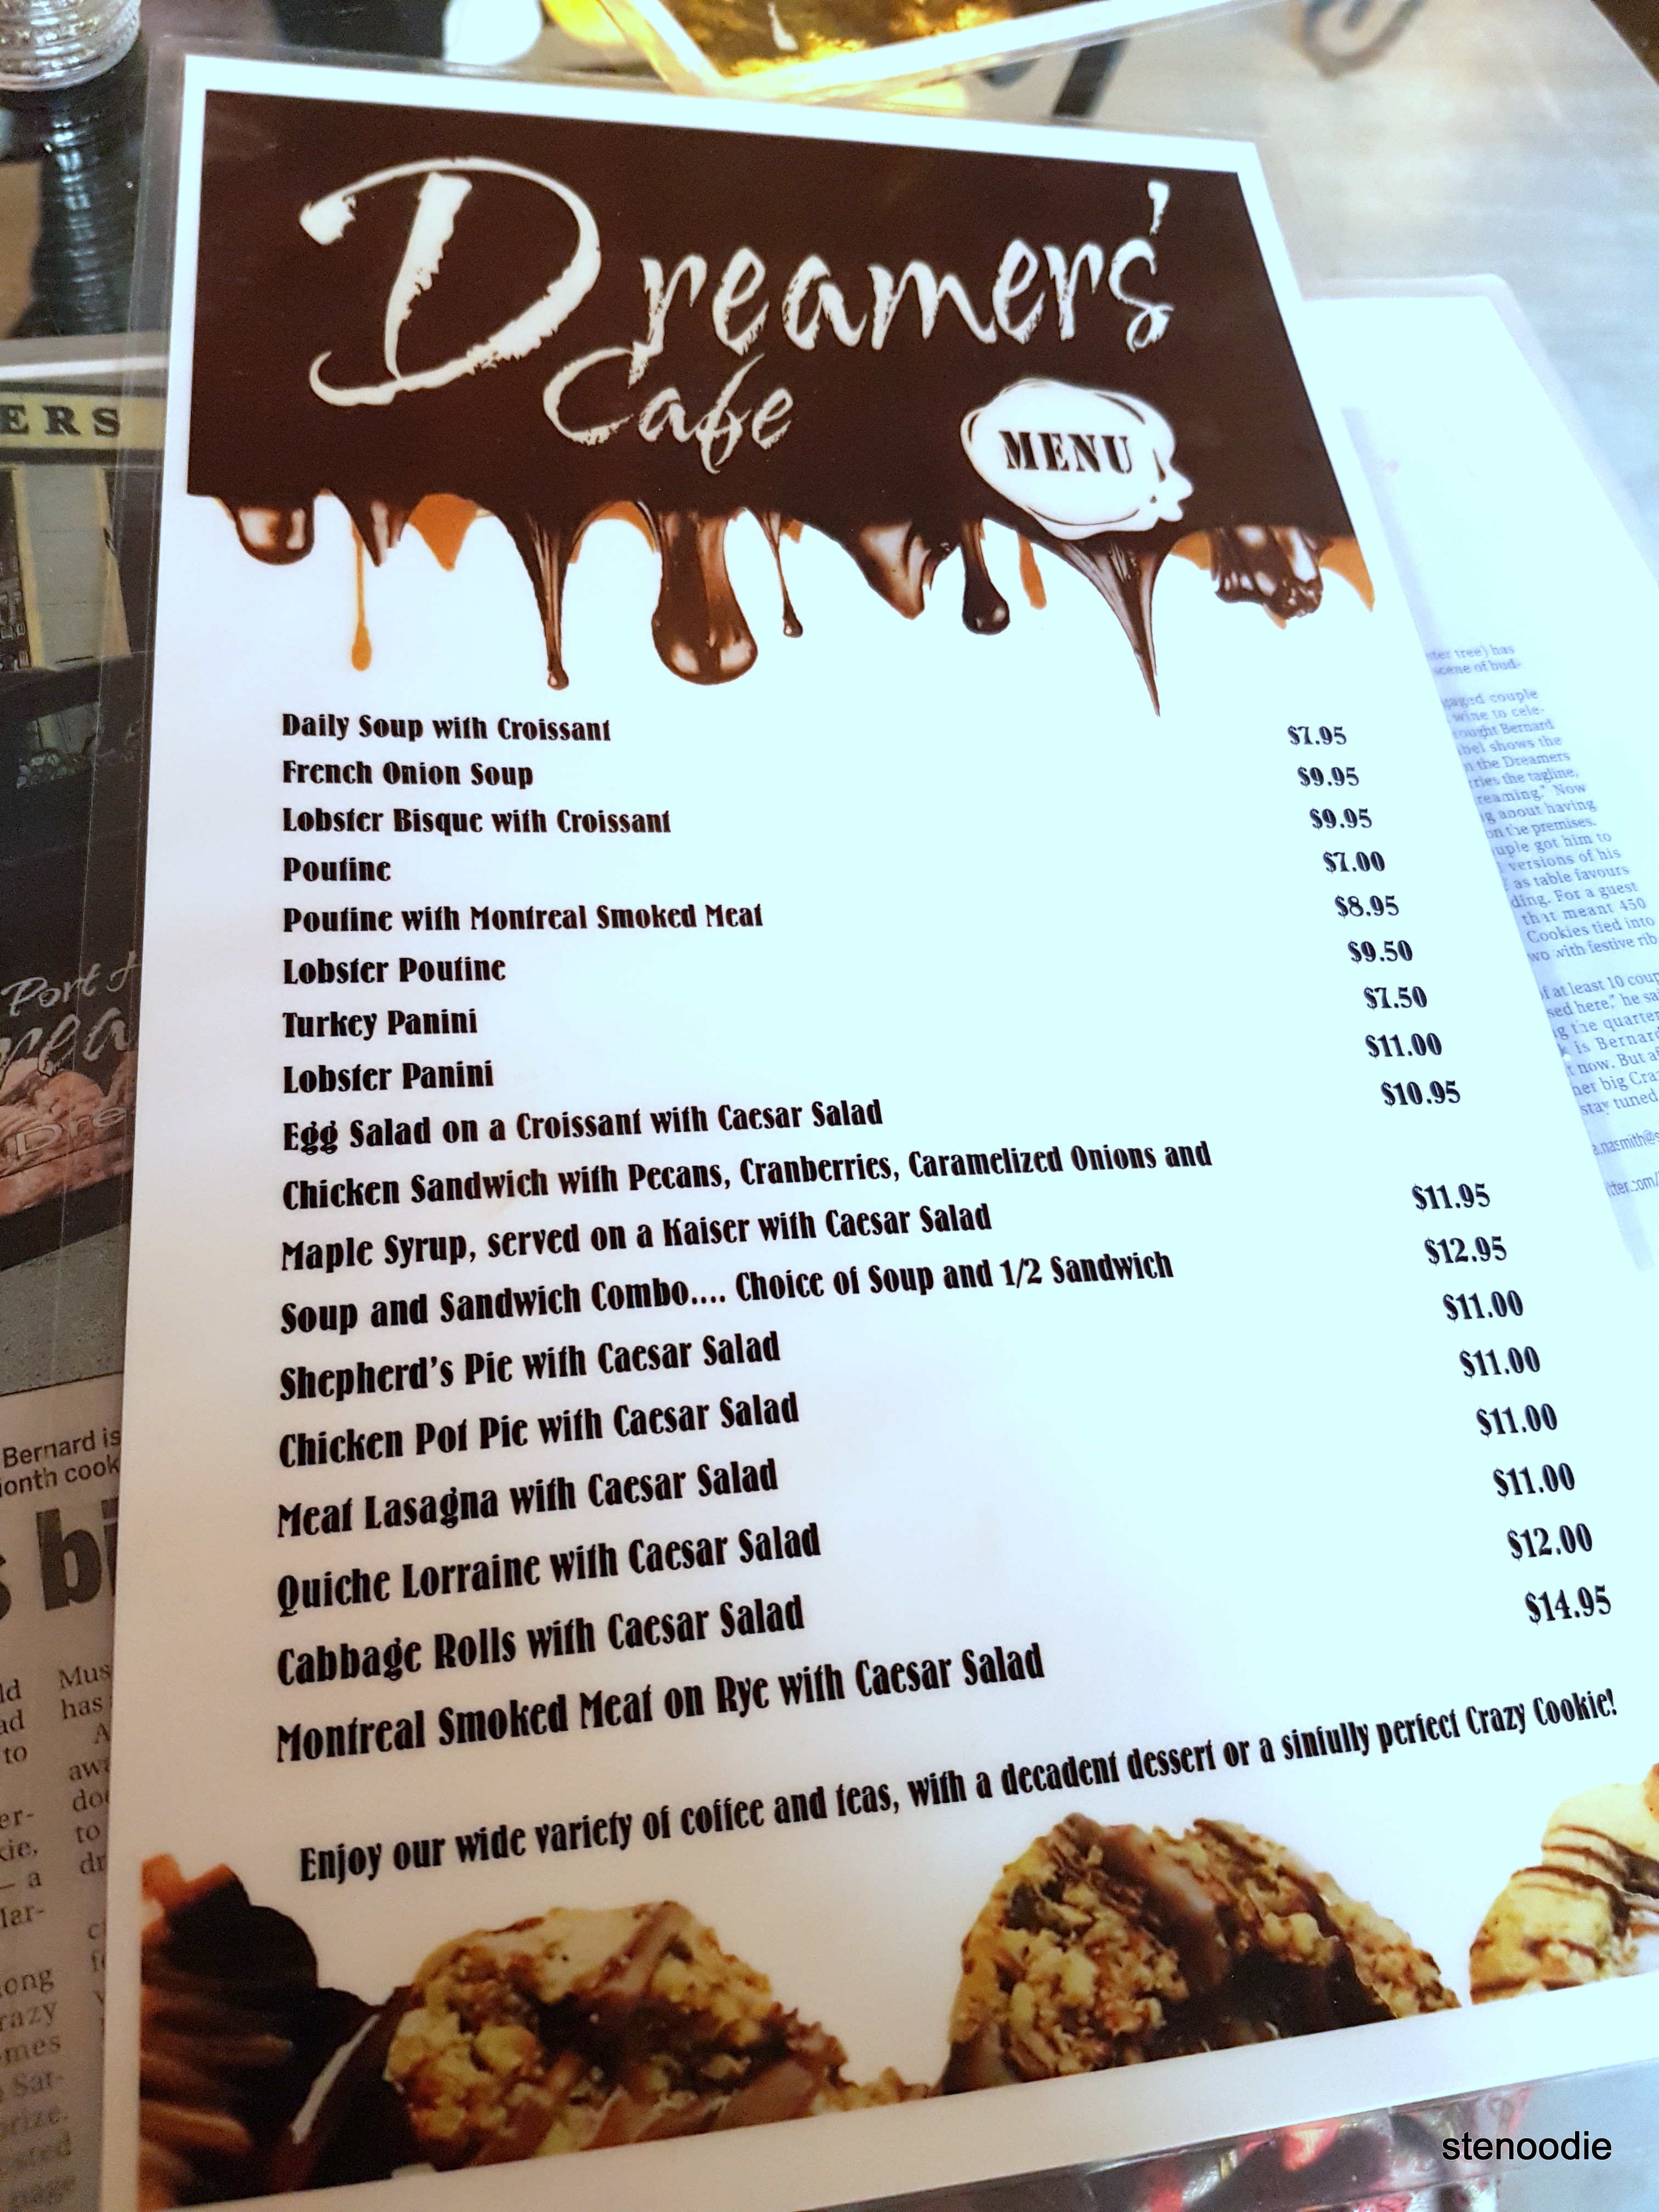 Dreamers' Cafe lunch menu and prices